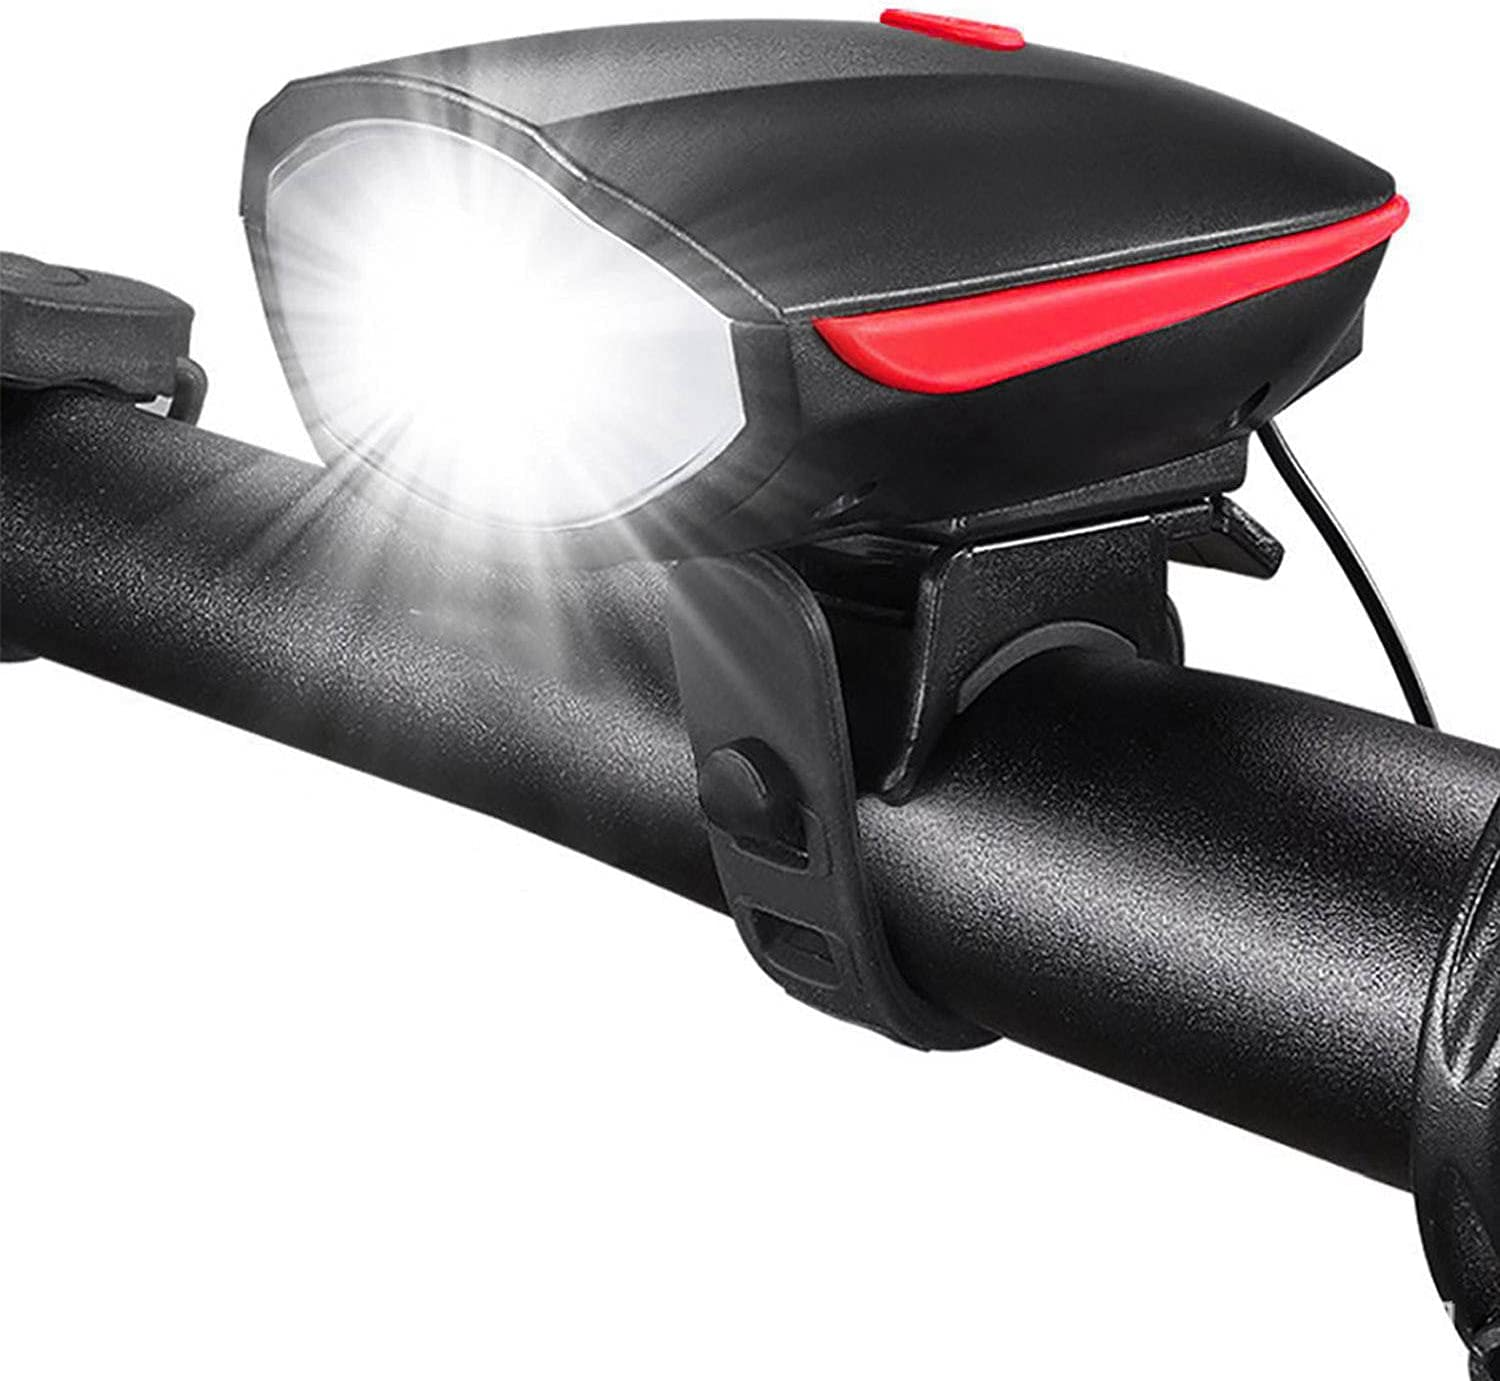 10000lm Ultra Bright Bike Lights Moclever Rear and Front USB Re New arrival free shipping